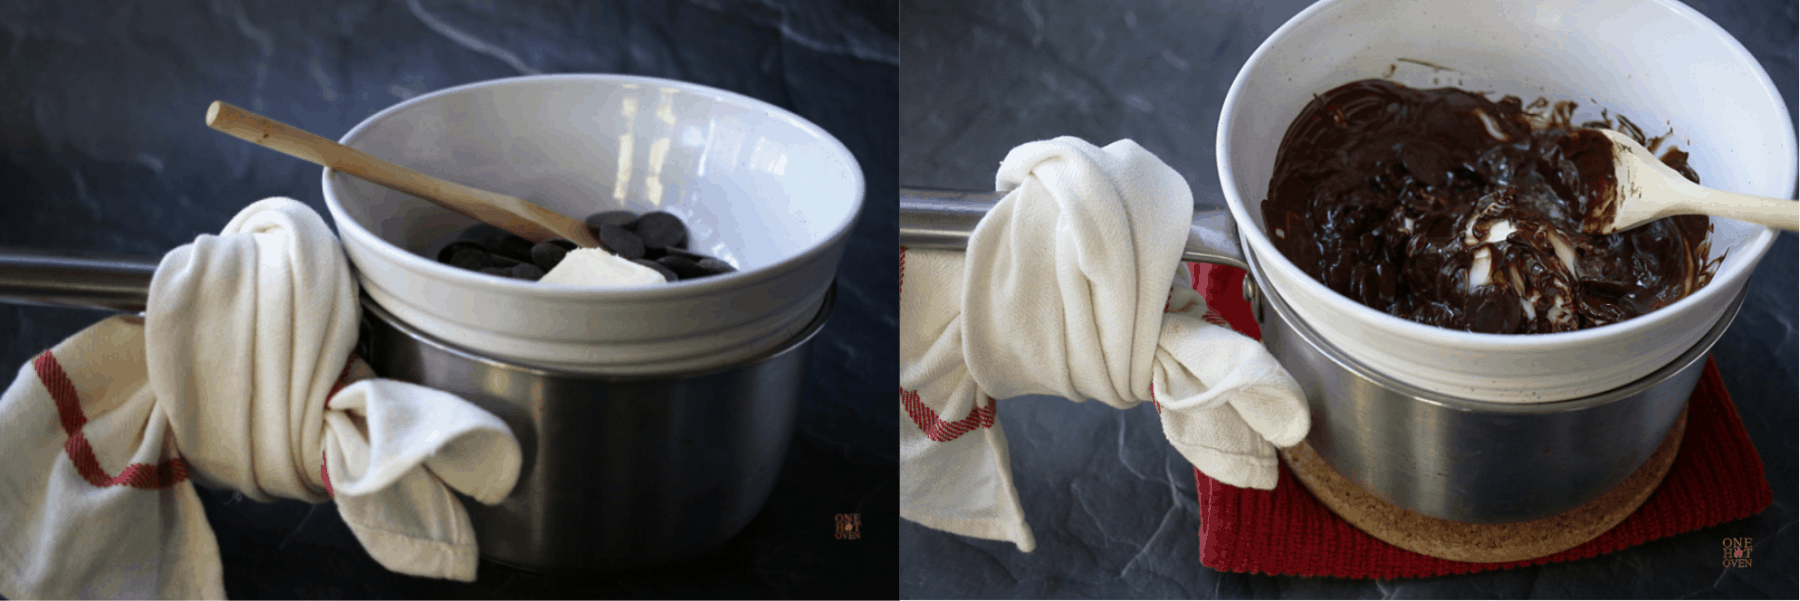 Melting chocolate wafers of a hot water bath for cookies